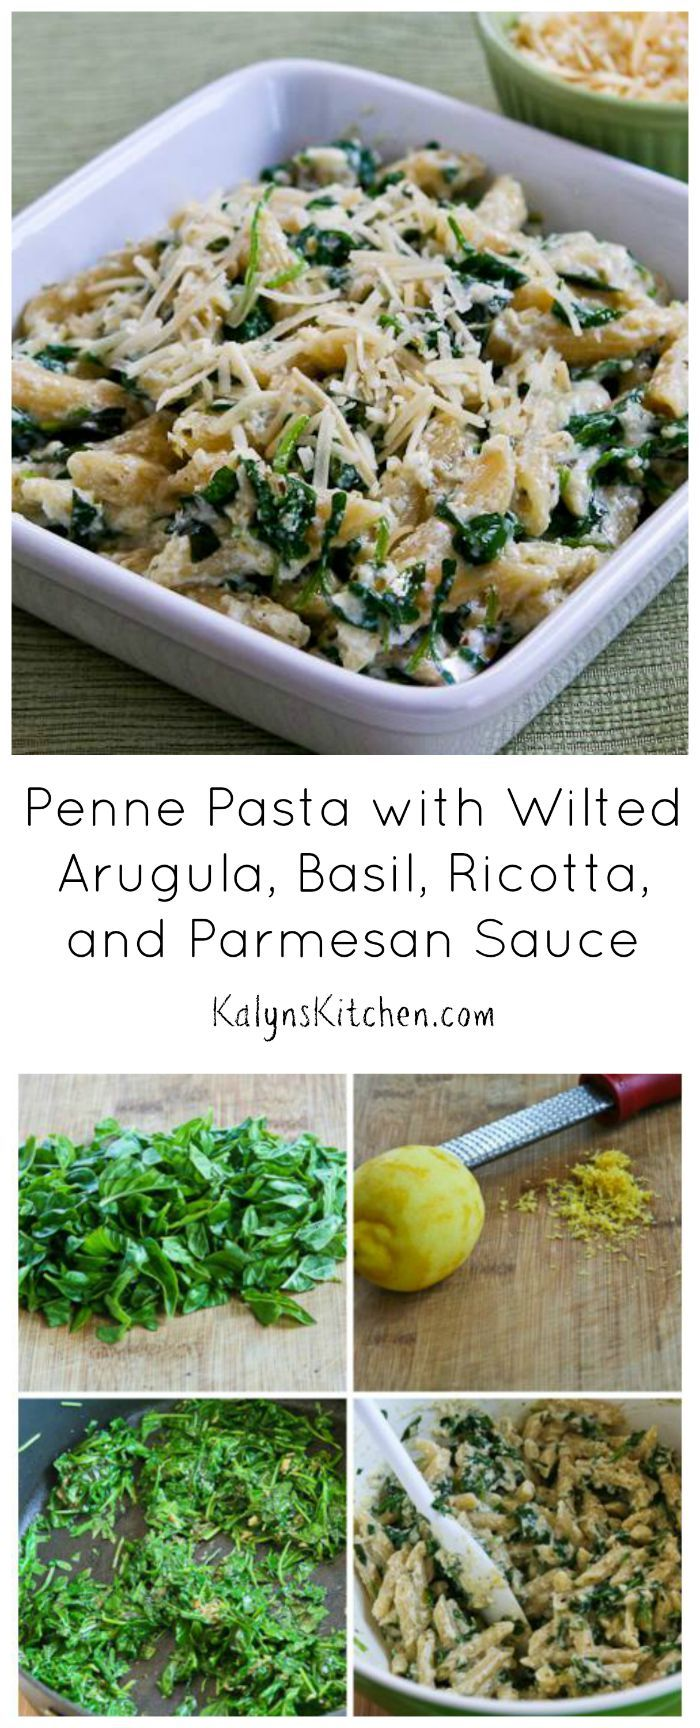 This easy Penne Pasta with Wilted Arugula, Basil, Ricotta, and Parmesan Sauce is a great way to use fresh basil, but you can make the sauce with pesto too. For a lower-carb version use more greens and less pasta. [from KalynsKitchen.com]